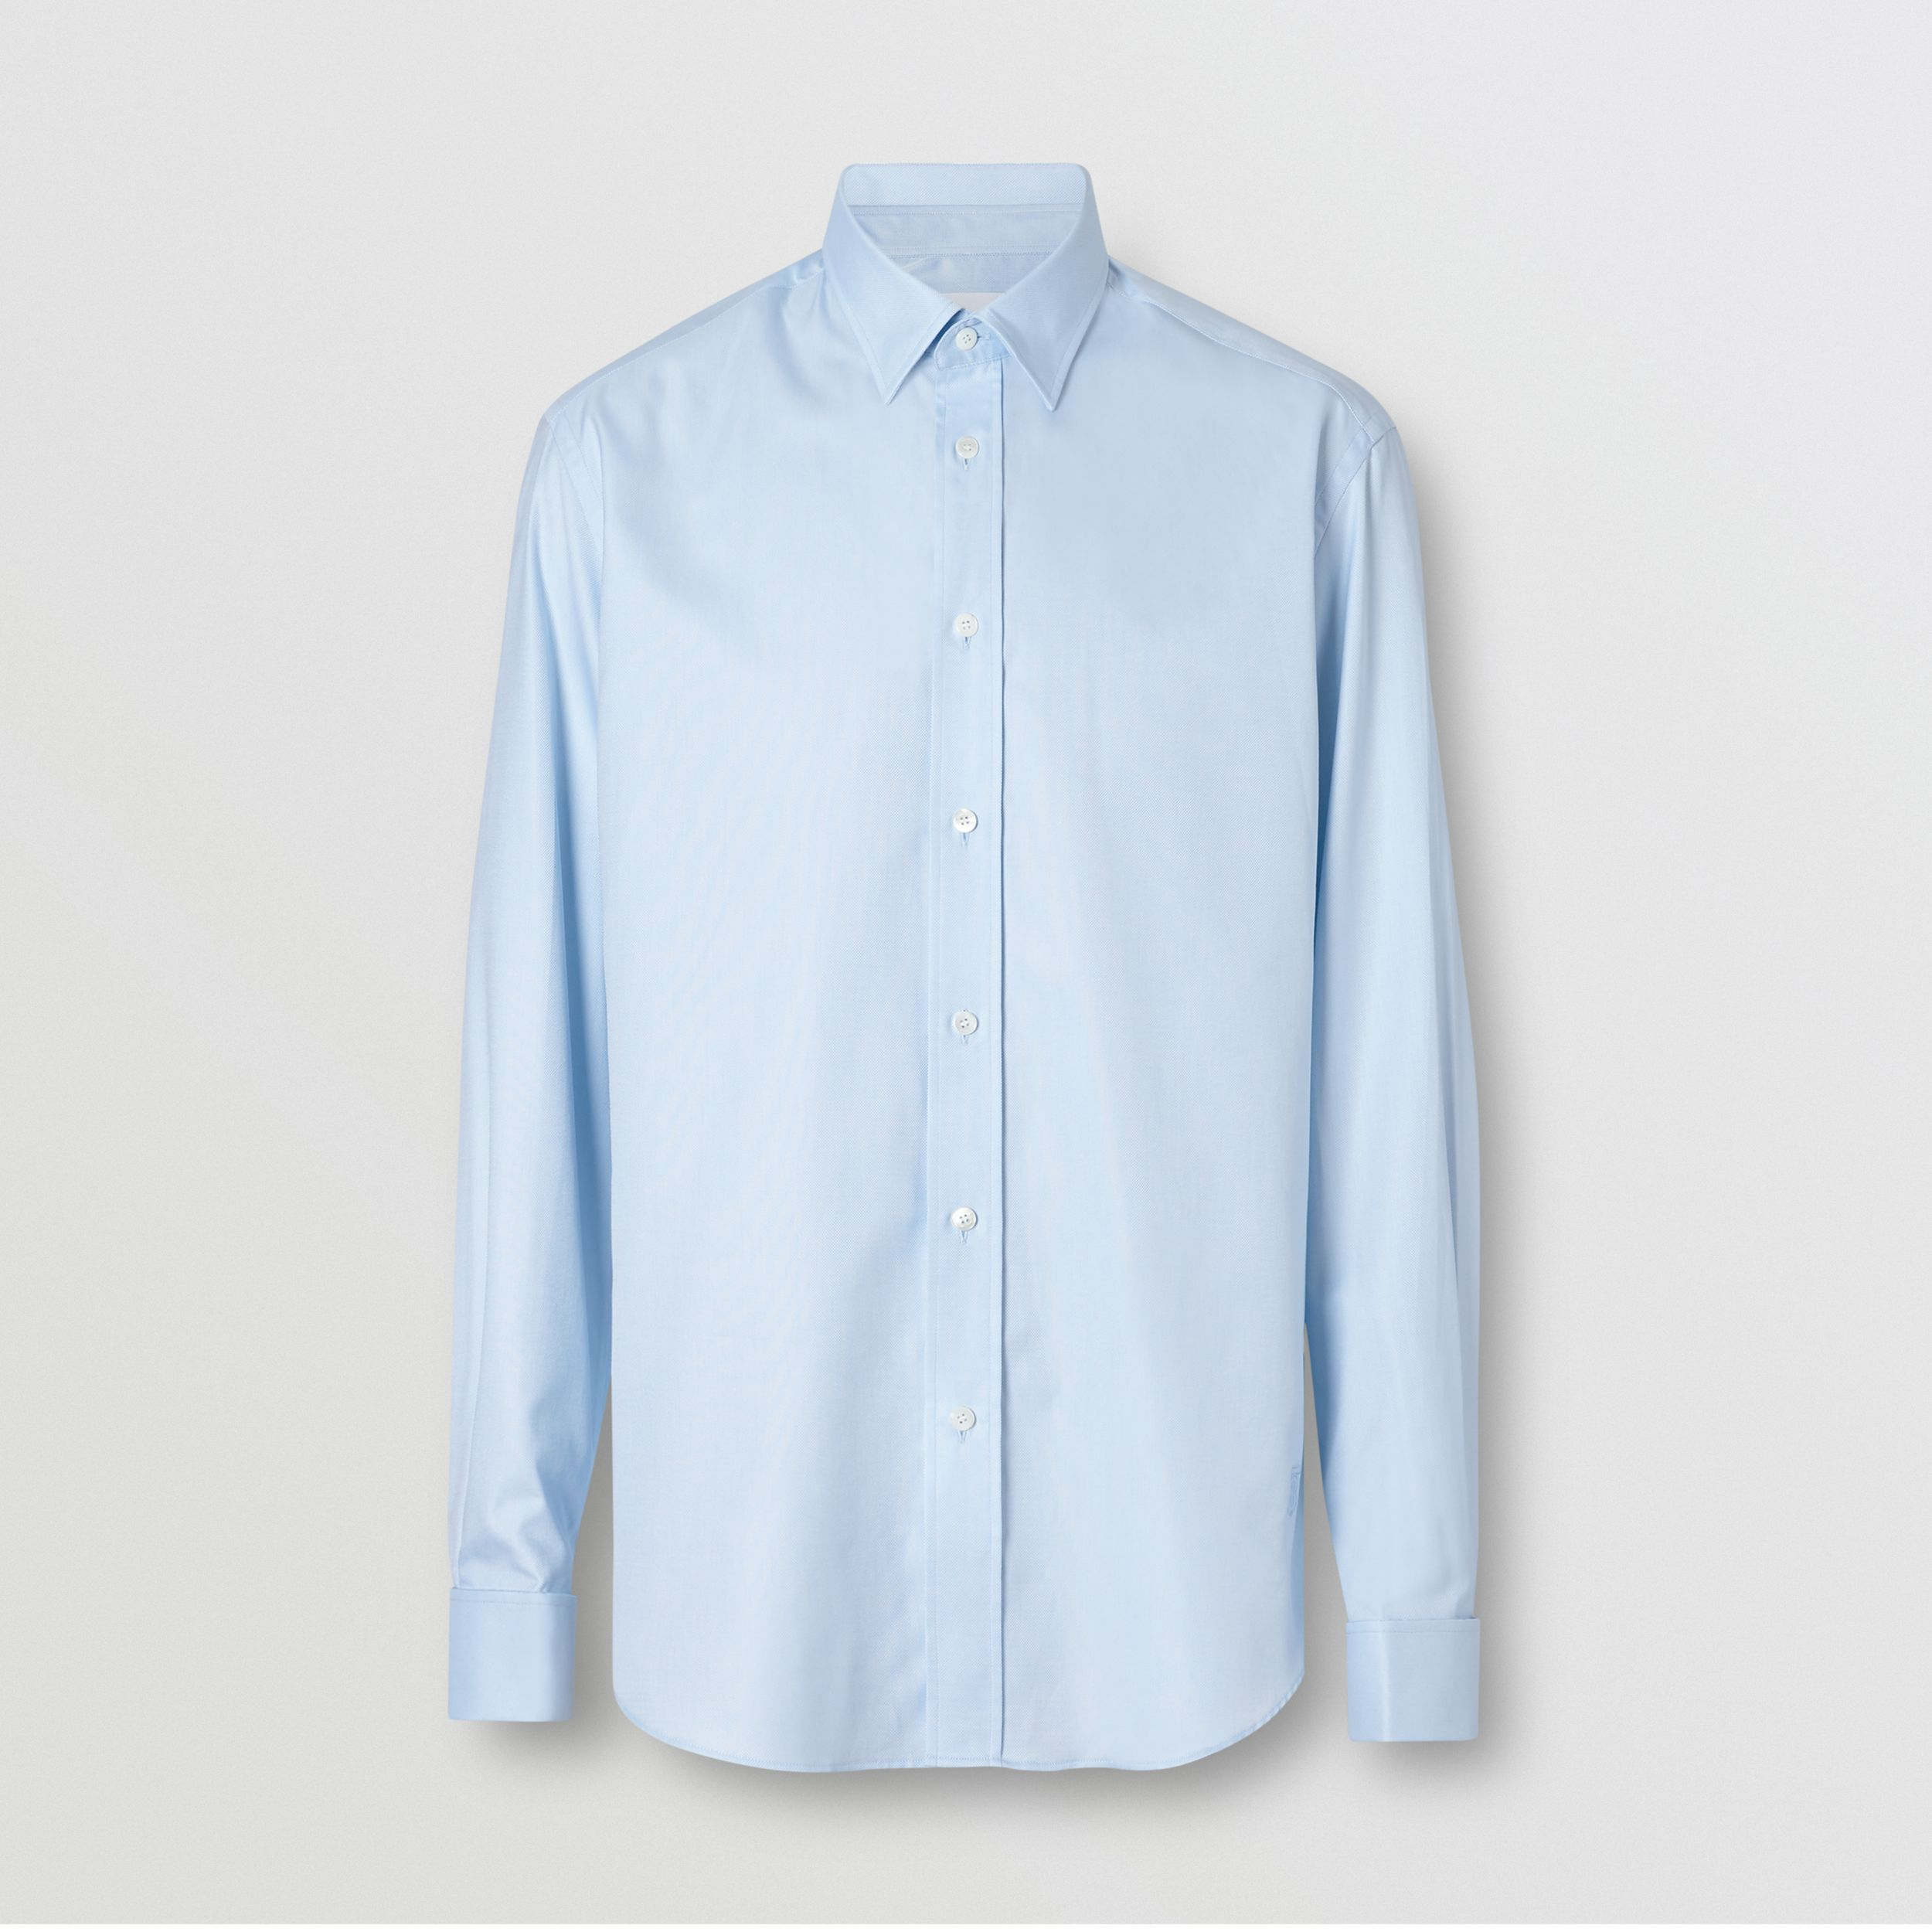 Classic Fit Monogram Motif Cotton Oxford Shirt in Pale Blue - Men | Burberry - 4